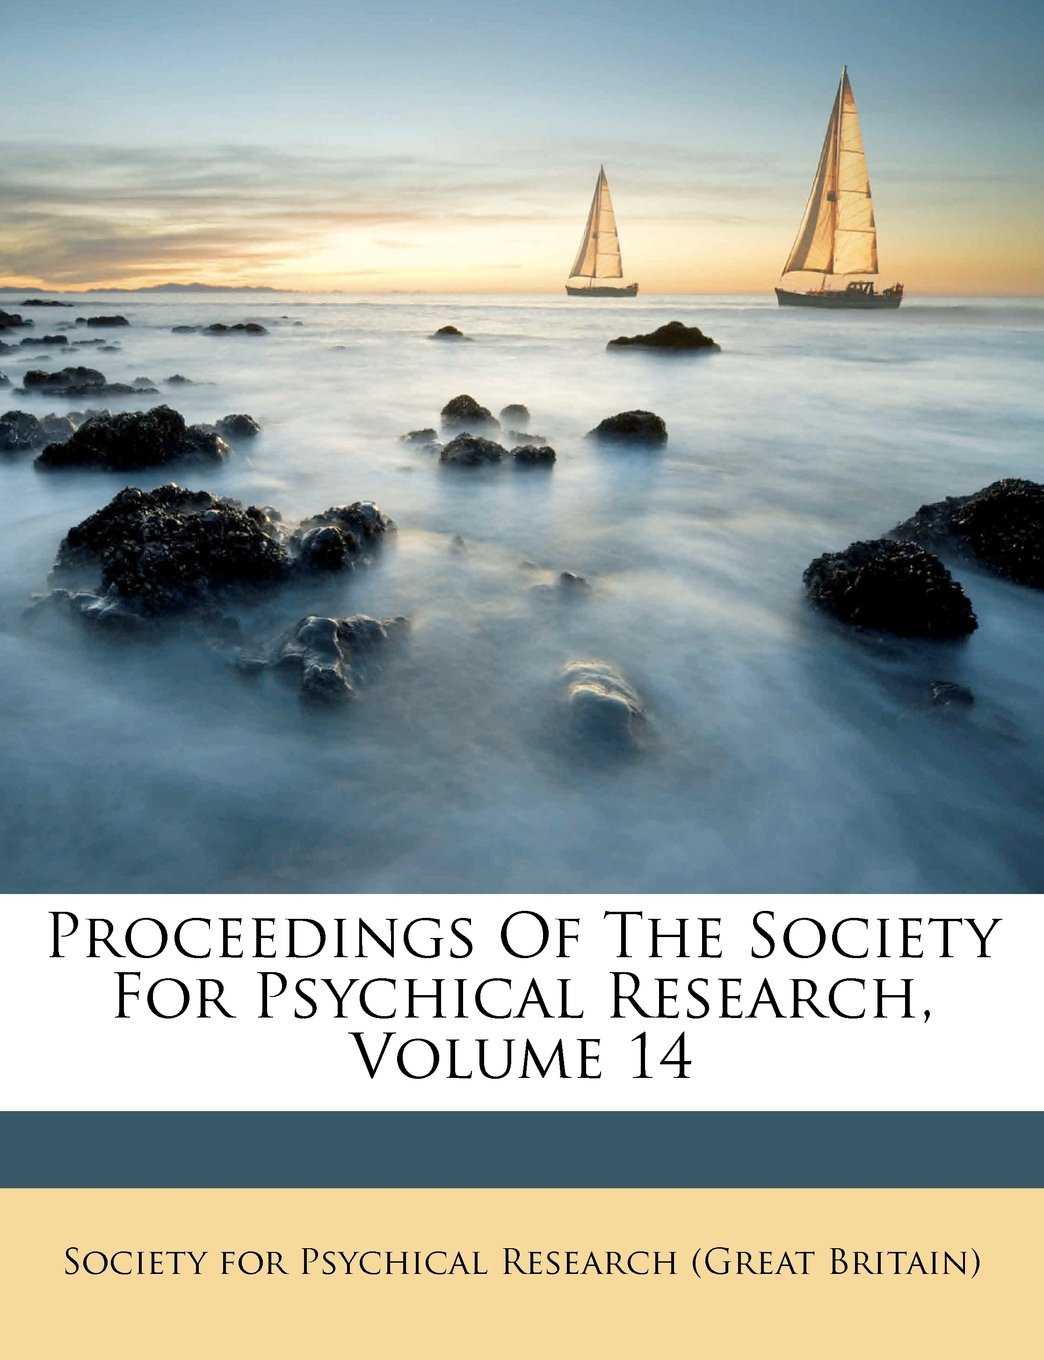 Download Proceedings Of The Society For Psychical Research, Volume 14 ebook